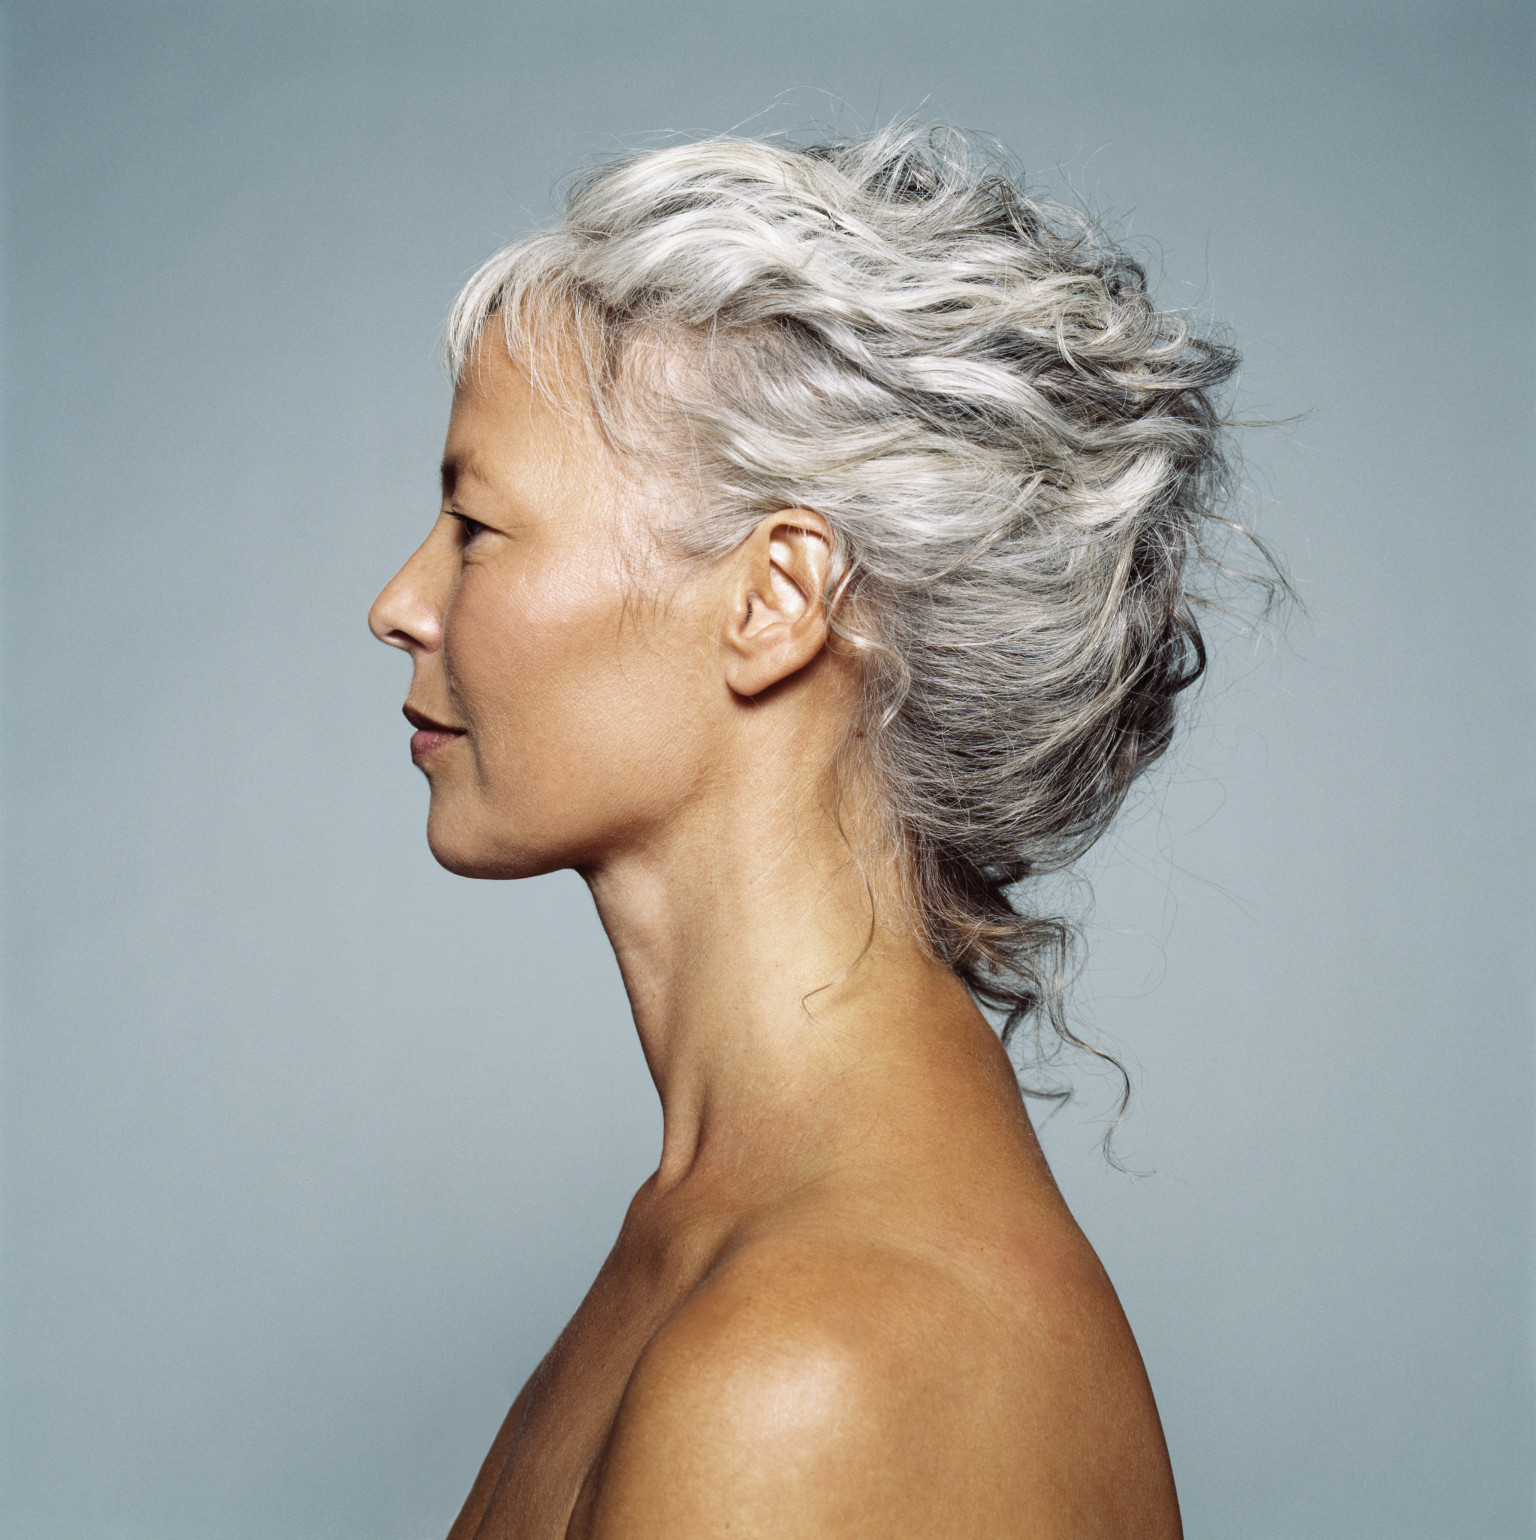 30 Stylish Gray Hair Styles For Short And Long Hair In Short Haircuts For Gray Hair (View 7 of 25)